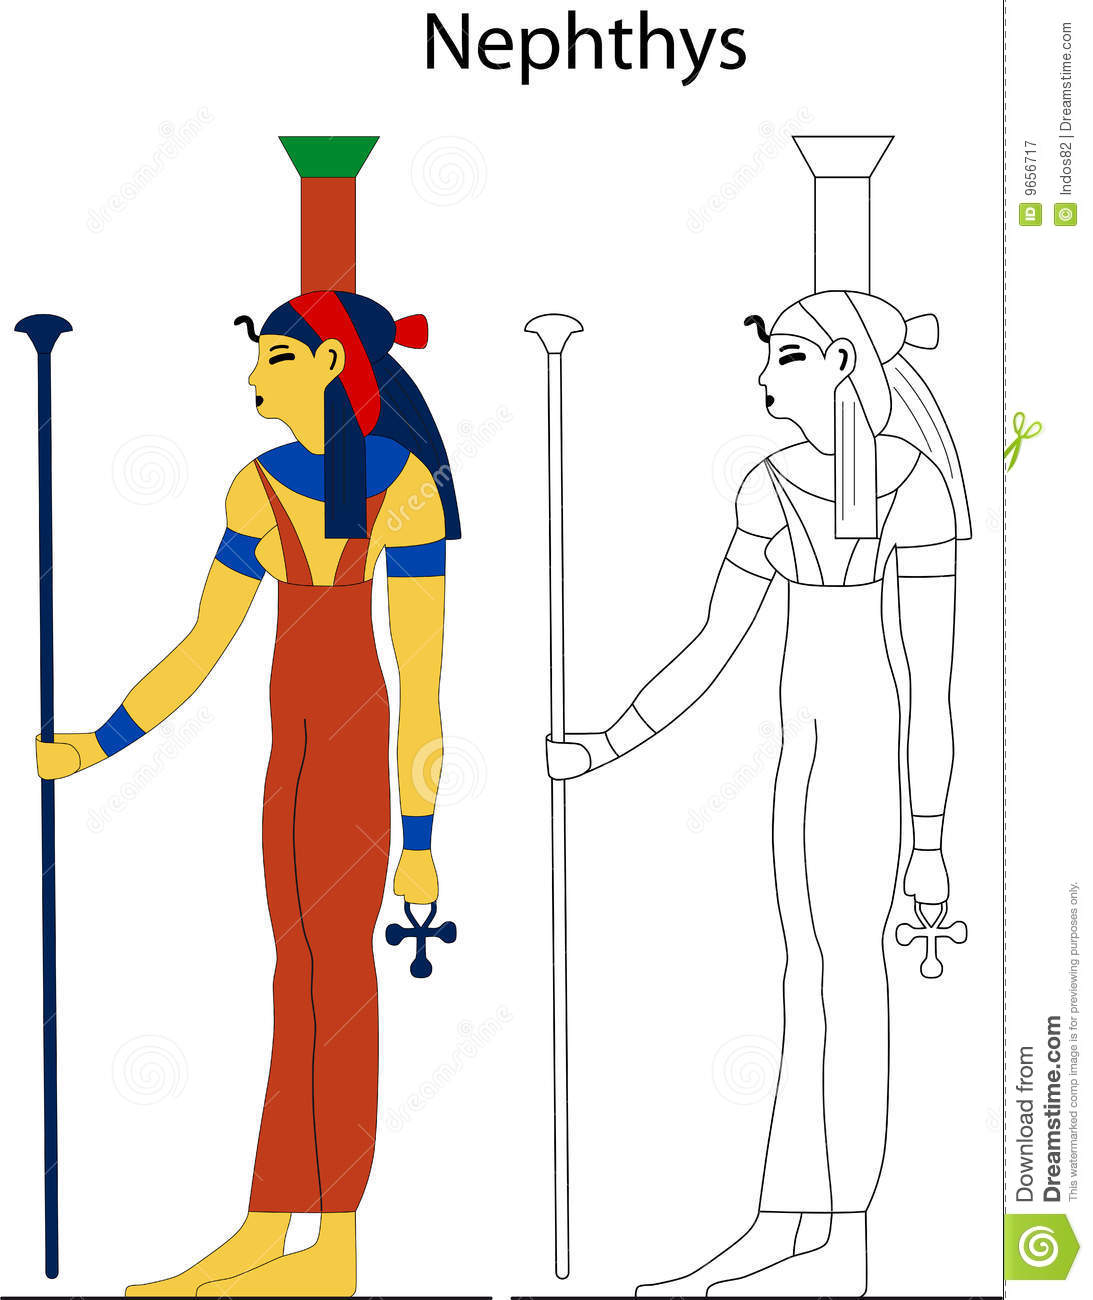 Ancient Egyptian Goddess - Nephthys Royalty Free Stock Photography ...